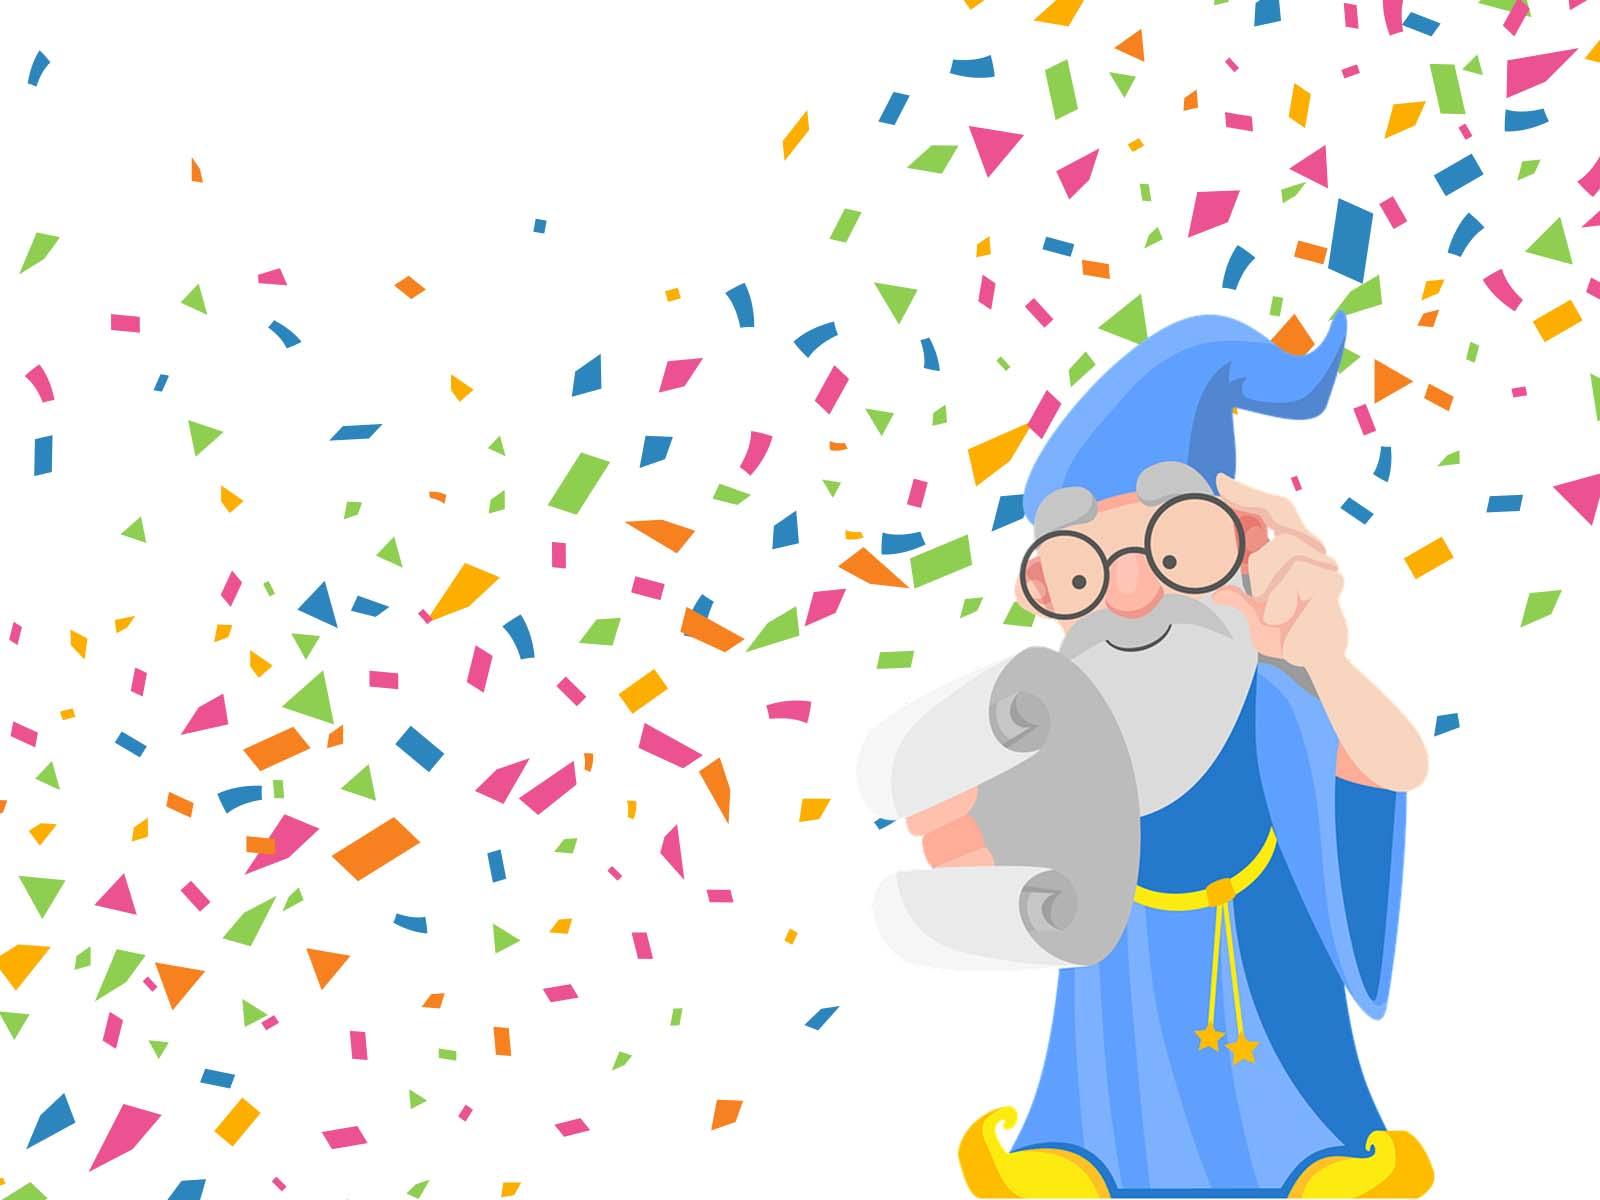 Wizard Confetti Backgrounds